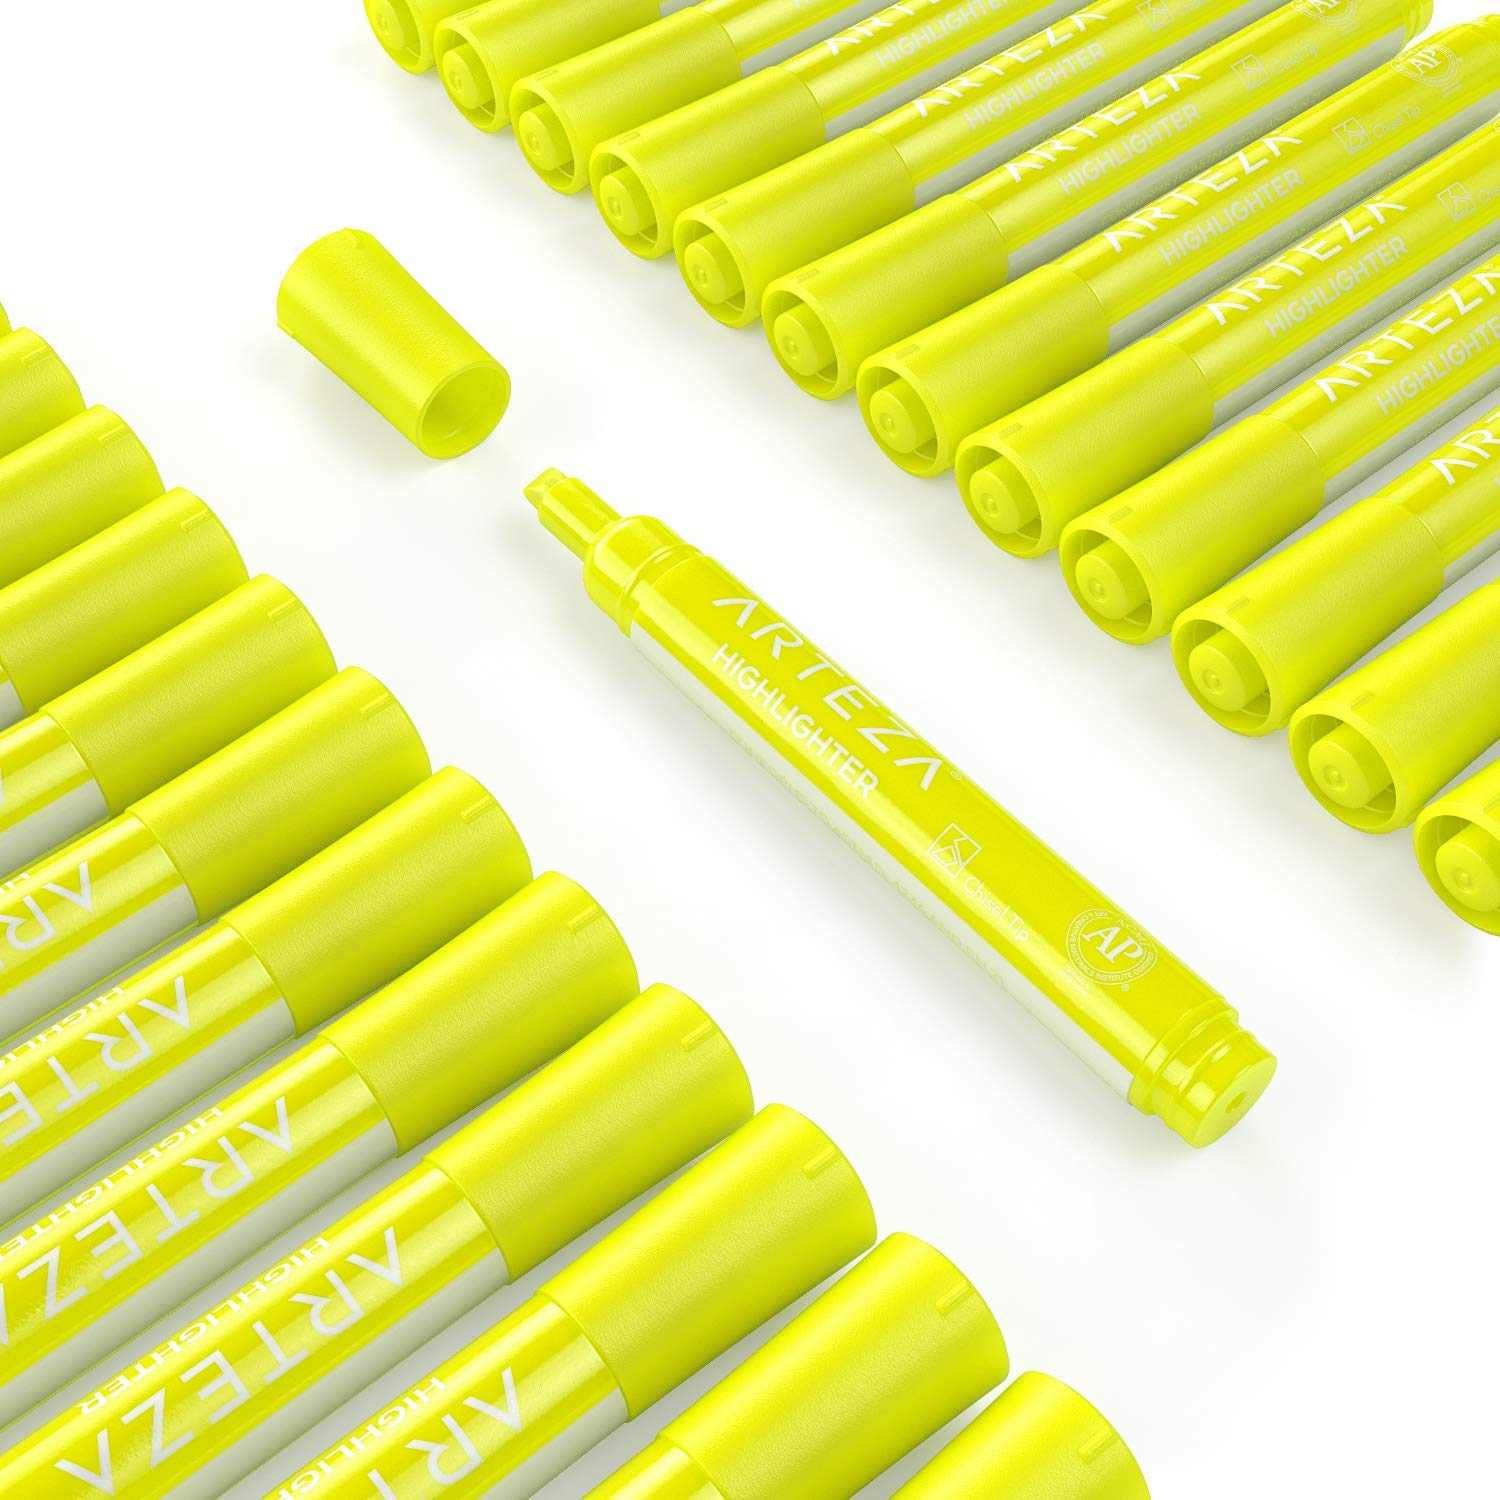 Arteza Highlighters Set of 64, Yellow Color, Wide Chisel Tips, Bulk Pack of Markers, for Office, School, Kids & Adults by ARTEZA (Image #2)